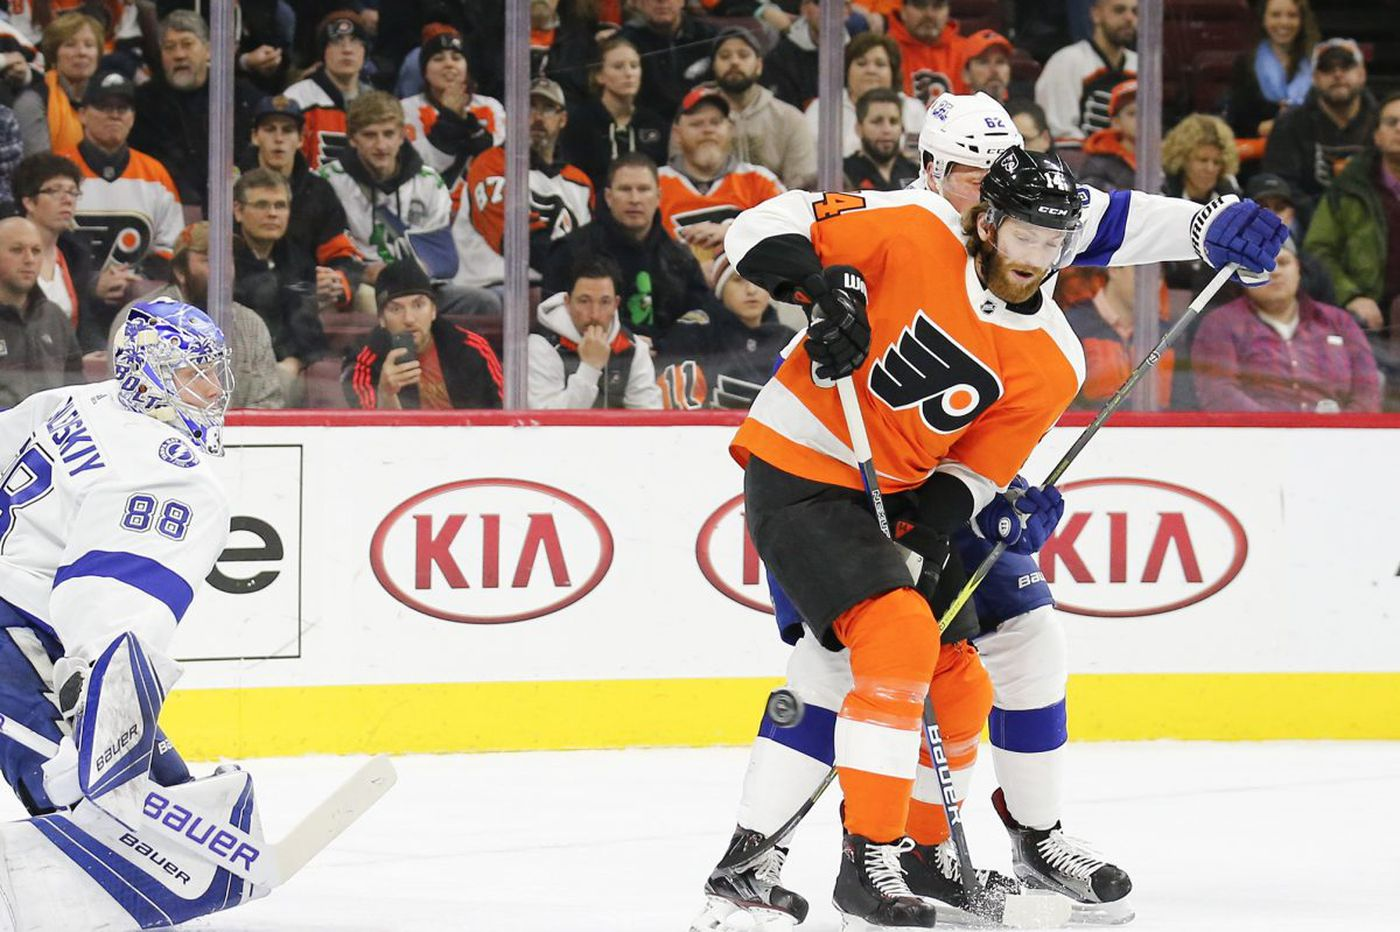 Flyers-Hurricanes preview: Angry Carolina coach vows changes